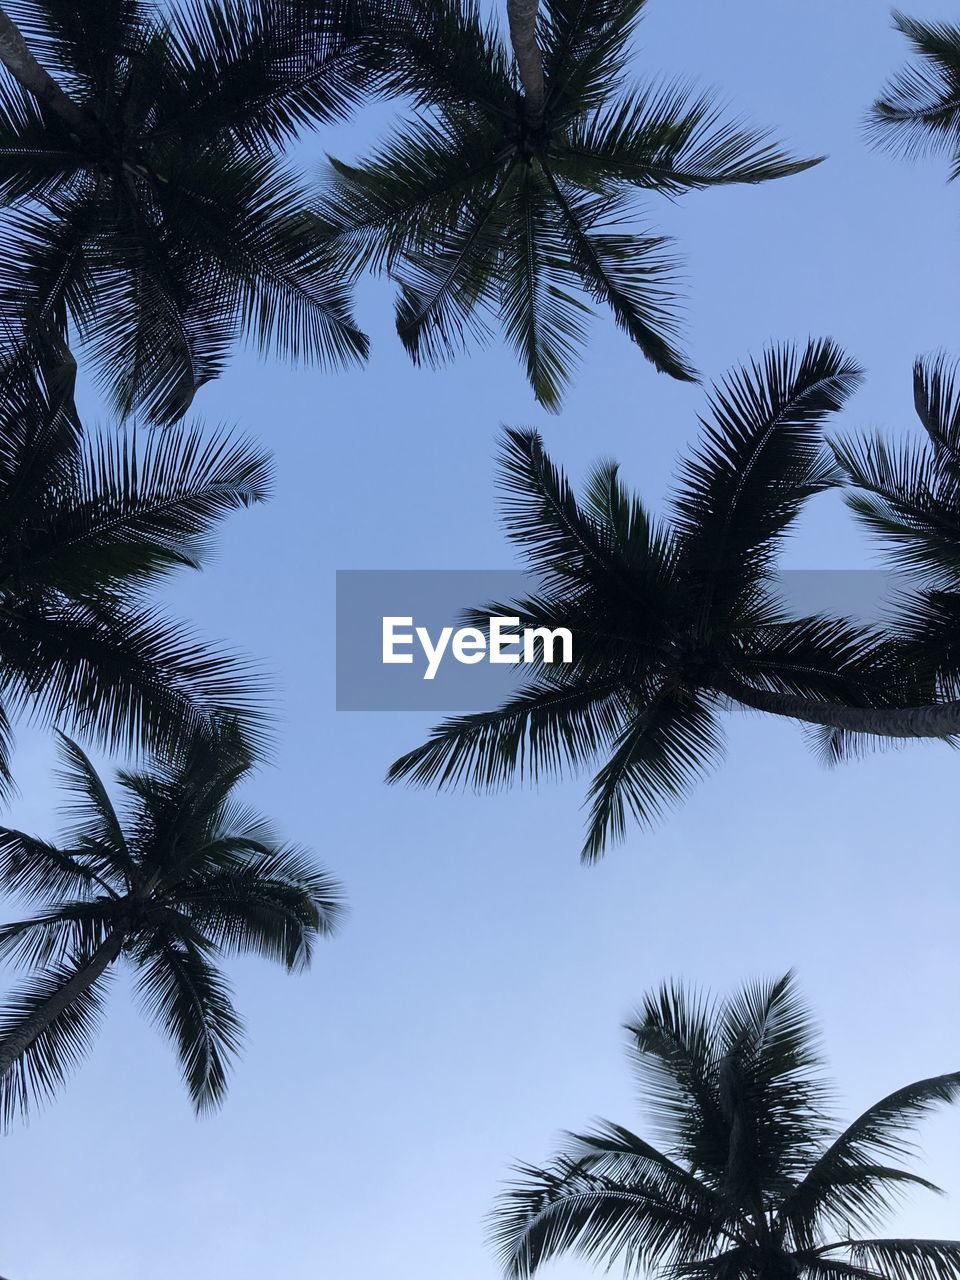 sky, palm tree, tree, tropical climate, low angle view, plant, beauty in nature, growth, no people, nature, clear sky, tranquility, outdoors, day, scenics - nature, blue, silhouette, tranquil scene, palm leaf, backgrounds, coconut palm tree, directly below